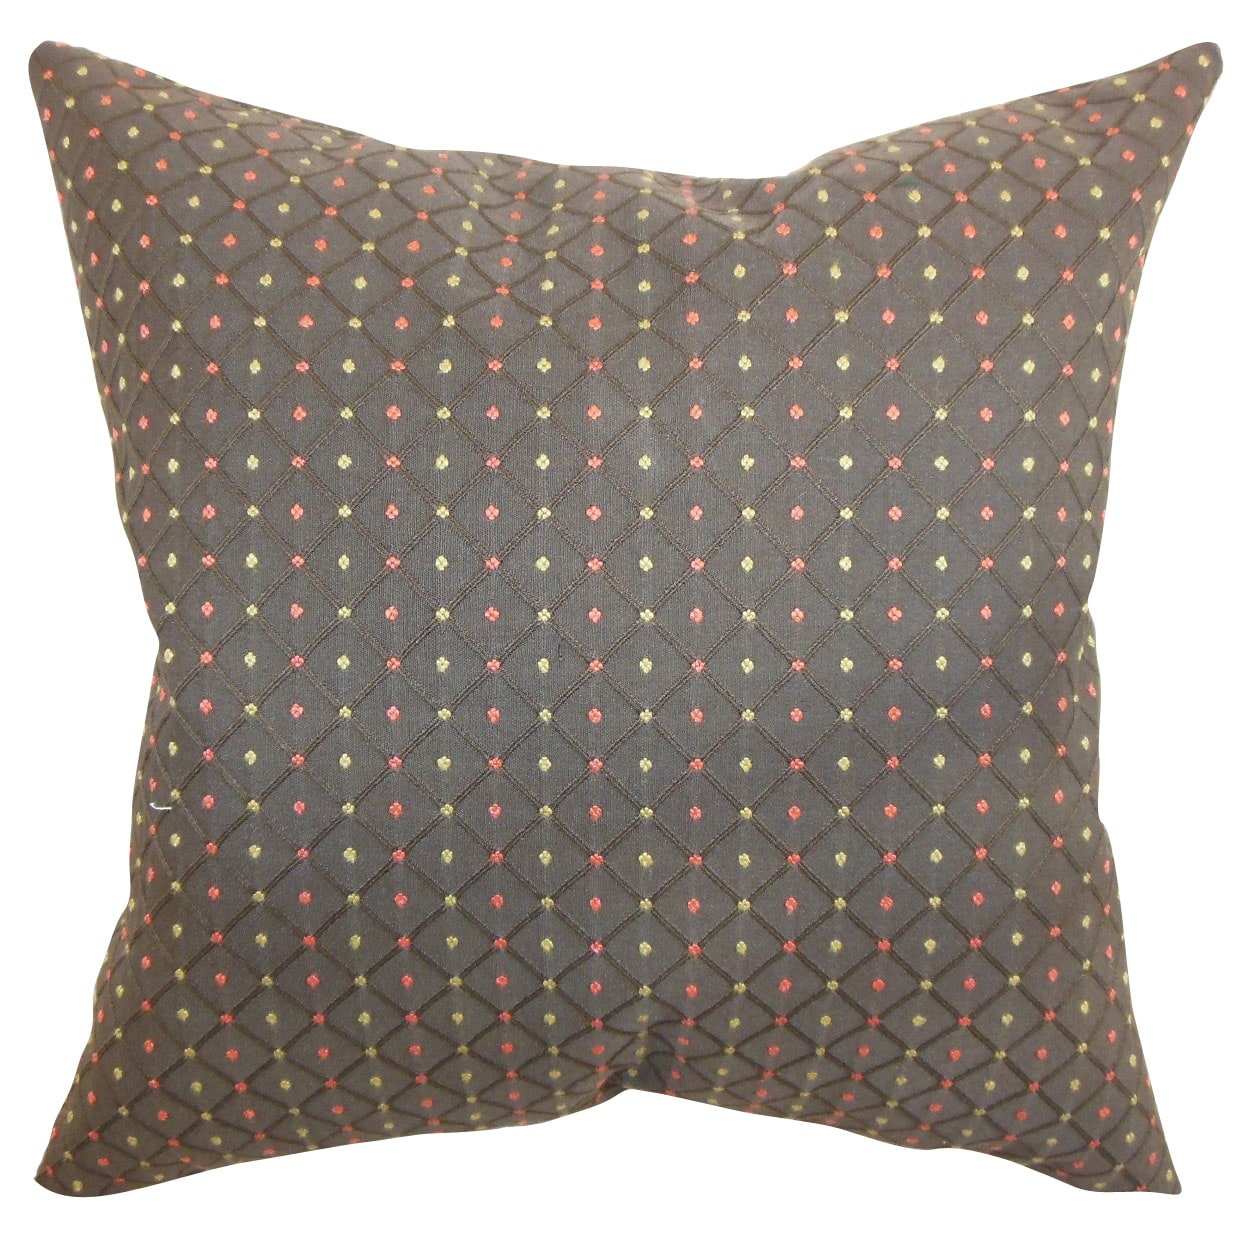 The Pillow Collection Ocelfa Brown Dots Feather and Down Filled Throw Pillow